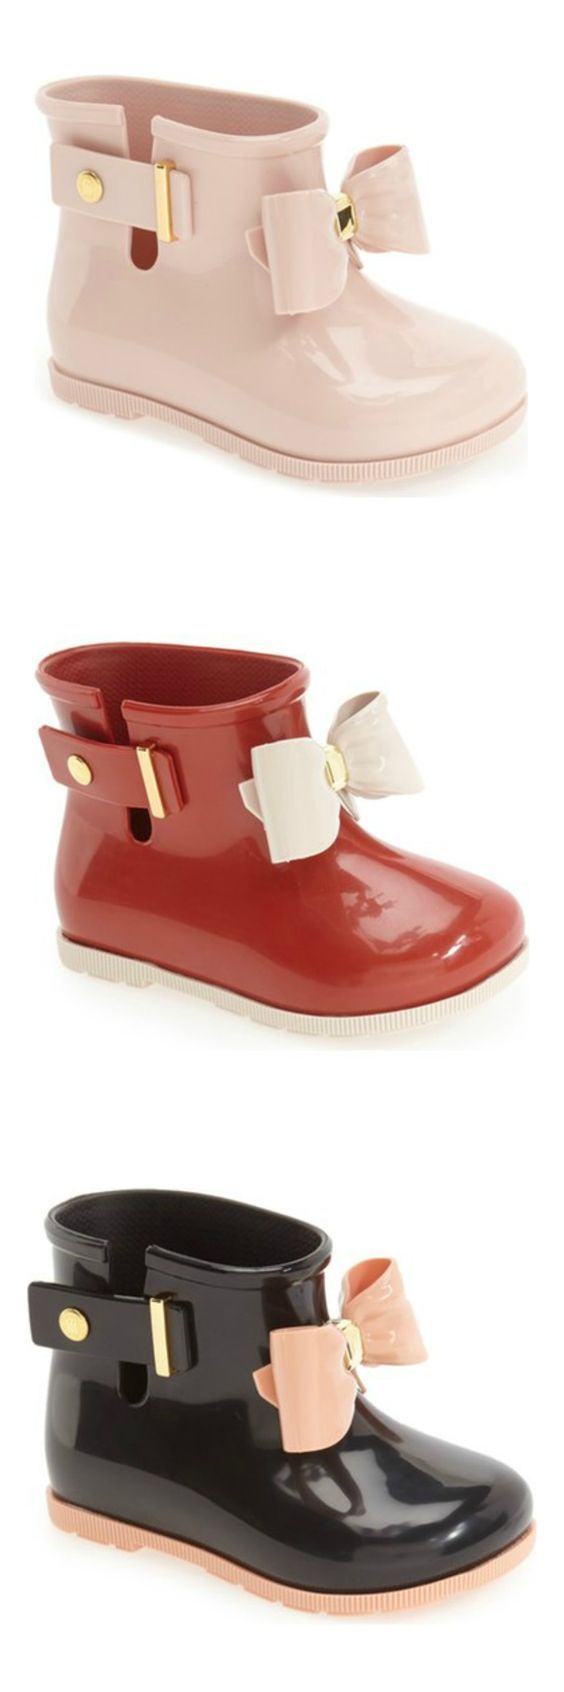 rain boots - way too cute!                                                                                                                                                                                 More